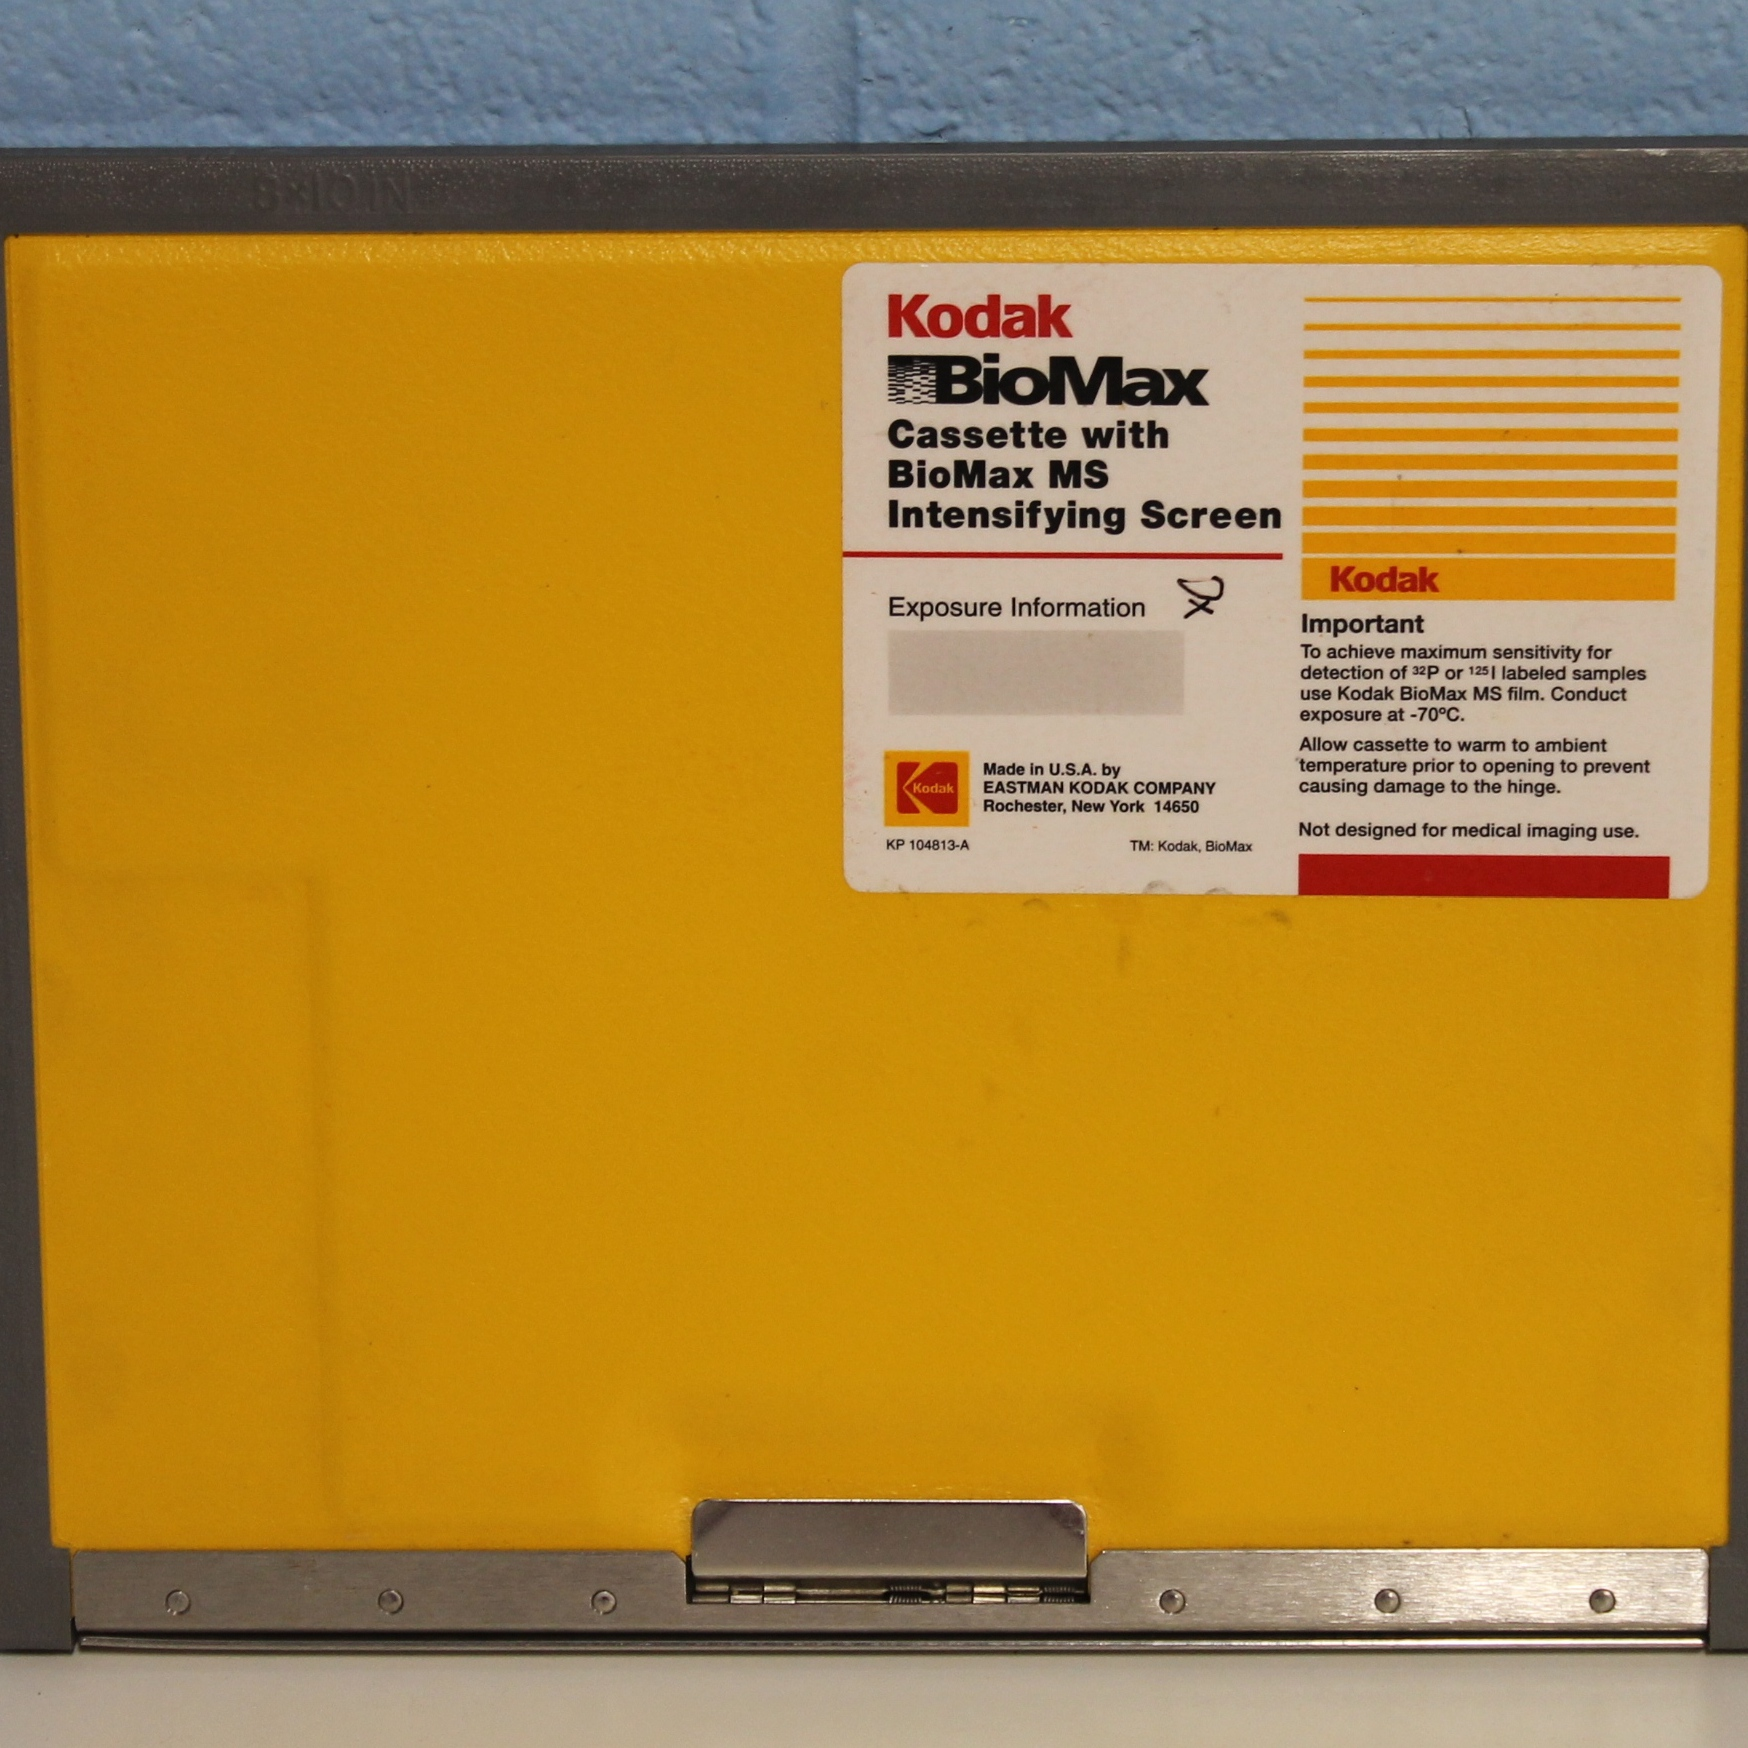 Kodak BioMax MS Intensifying Screen Image